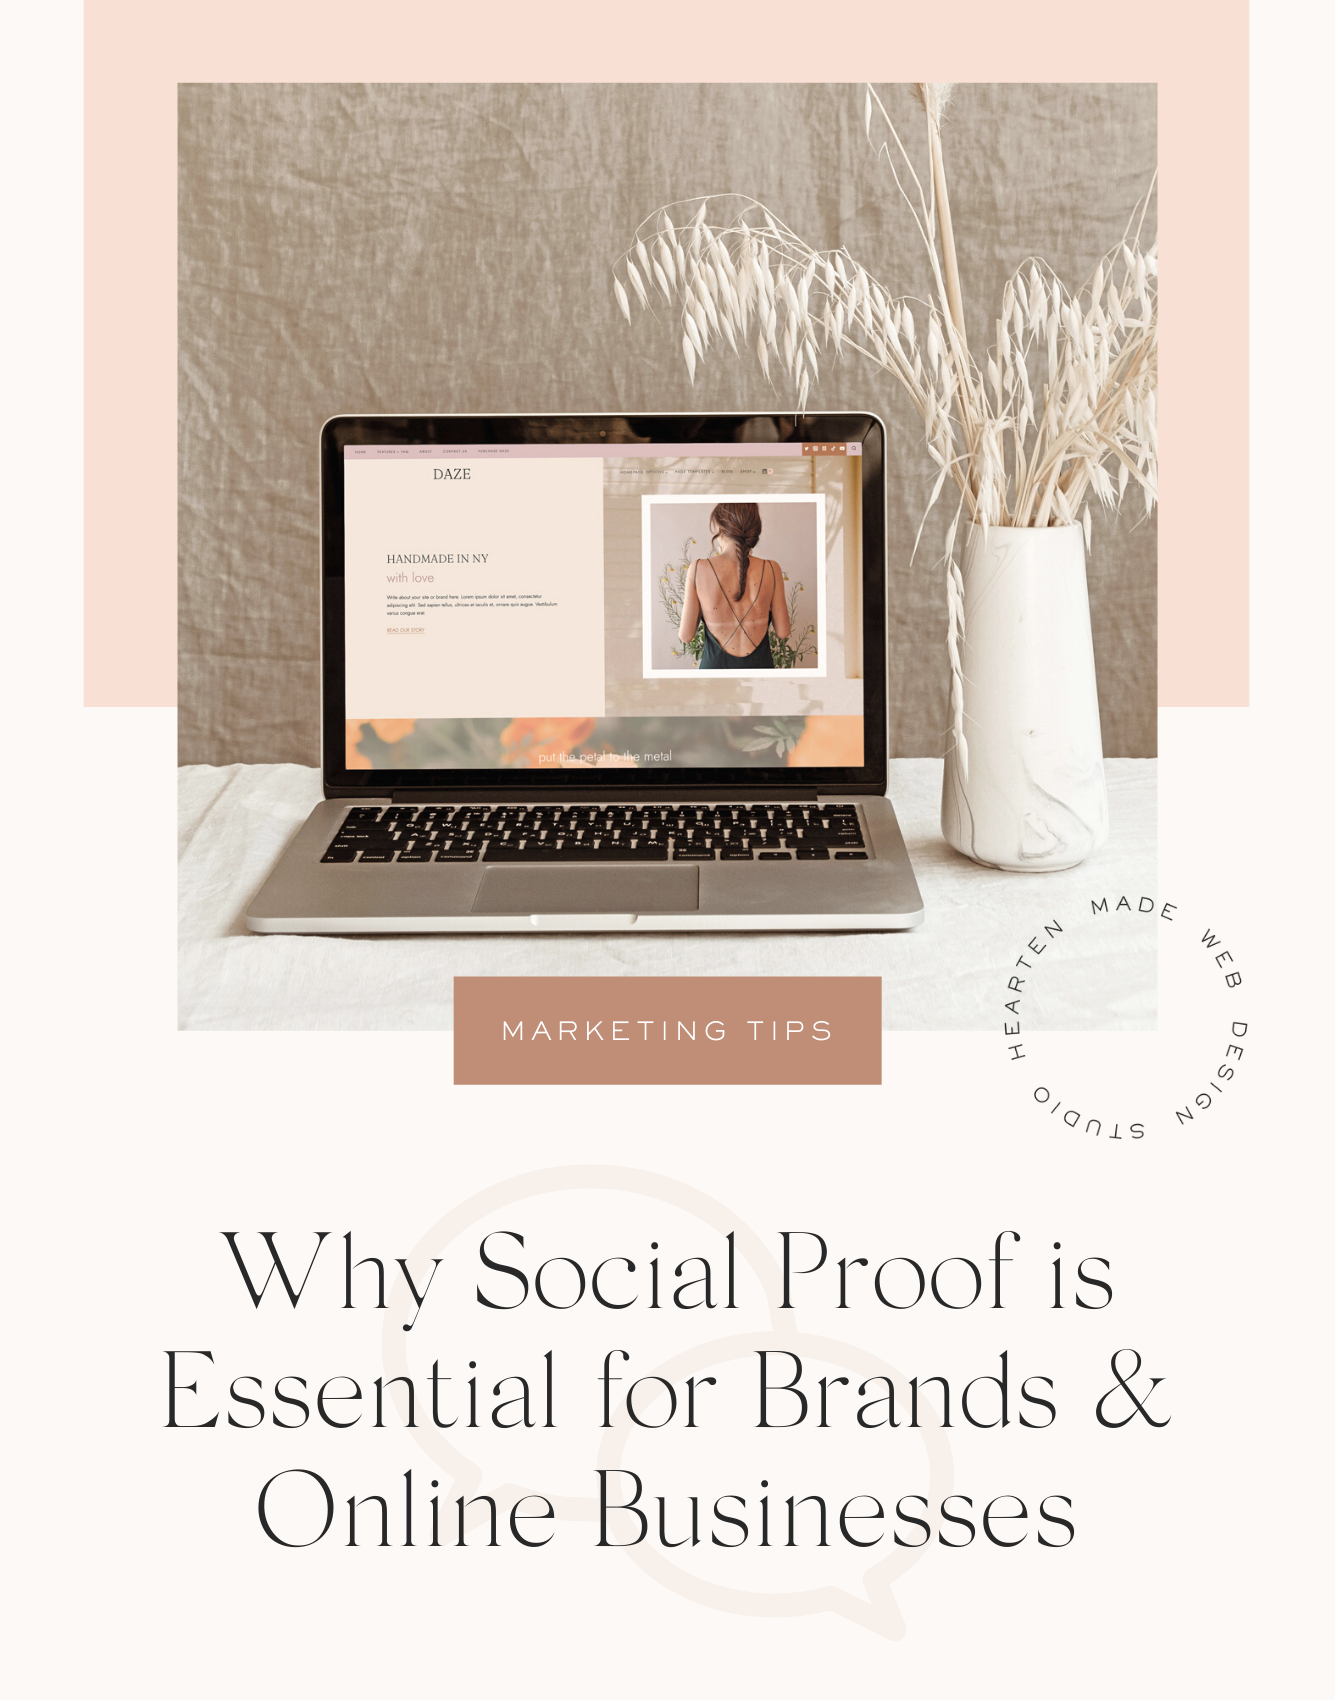 Why Social Proof is Essential for Brands & Online Businesses